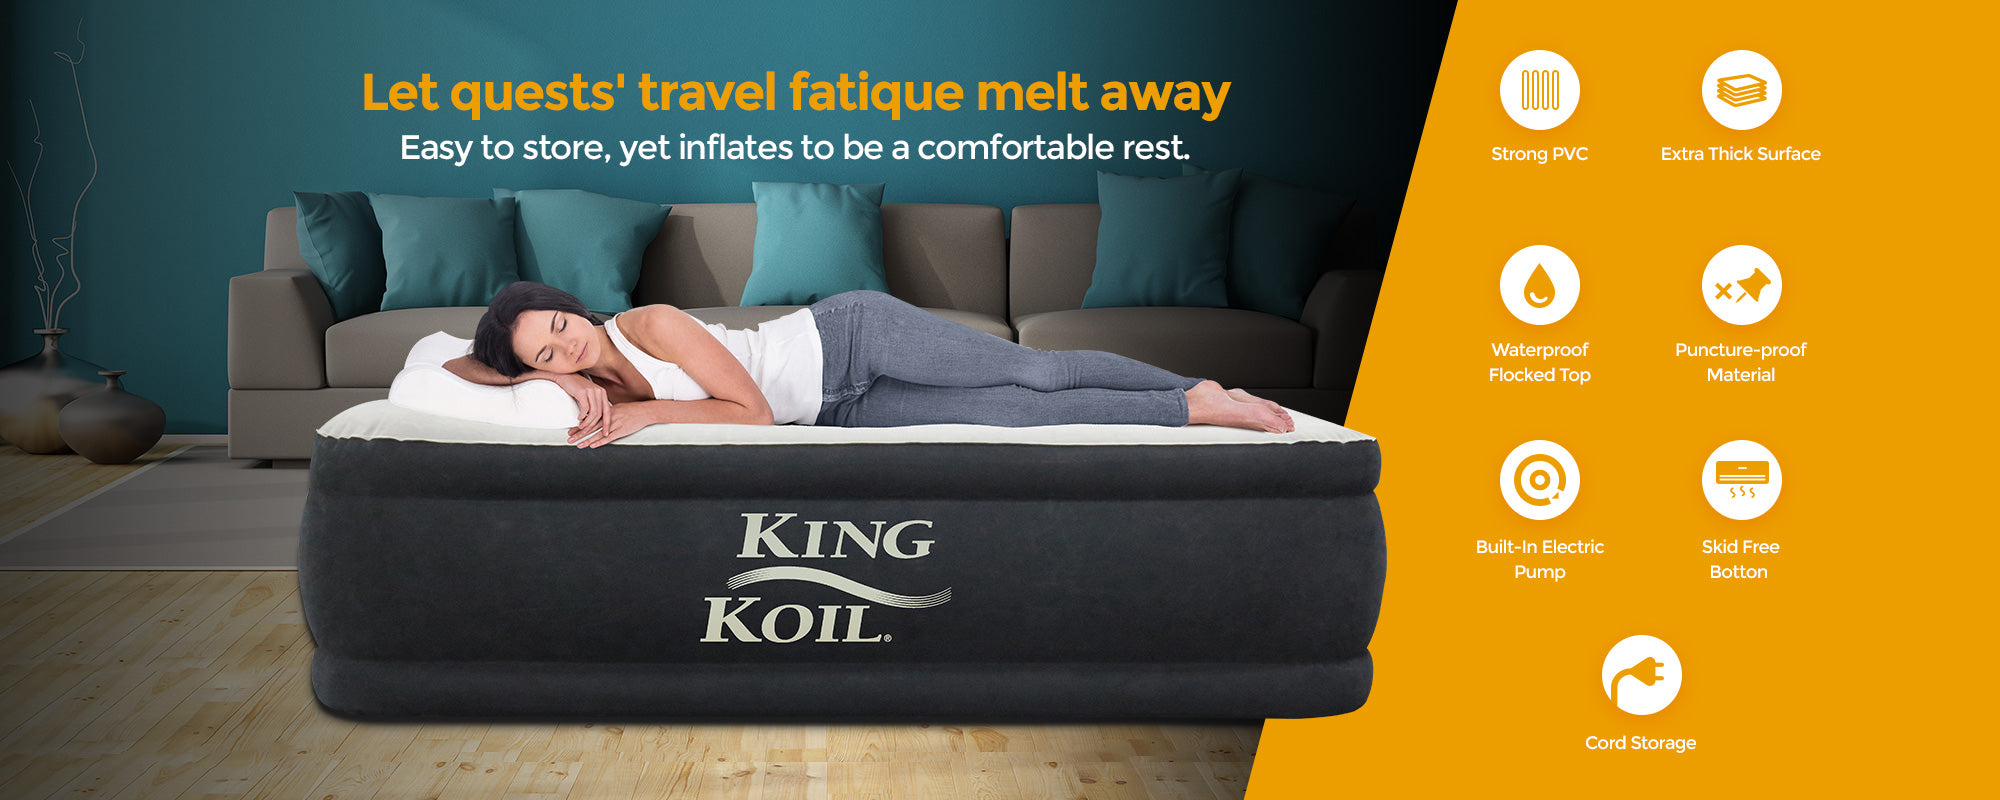 King Koil Airbeds The Best Air Mattresses And Airbeds In The World